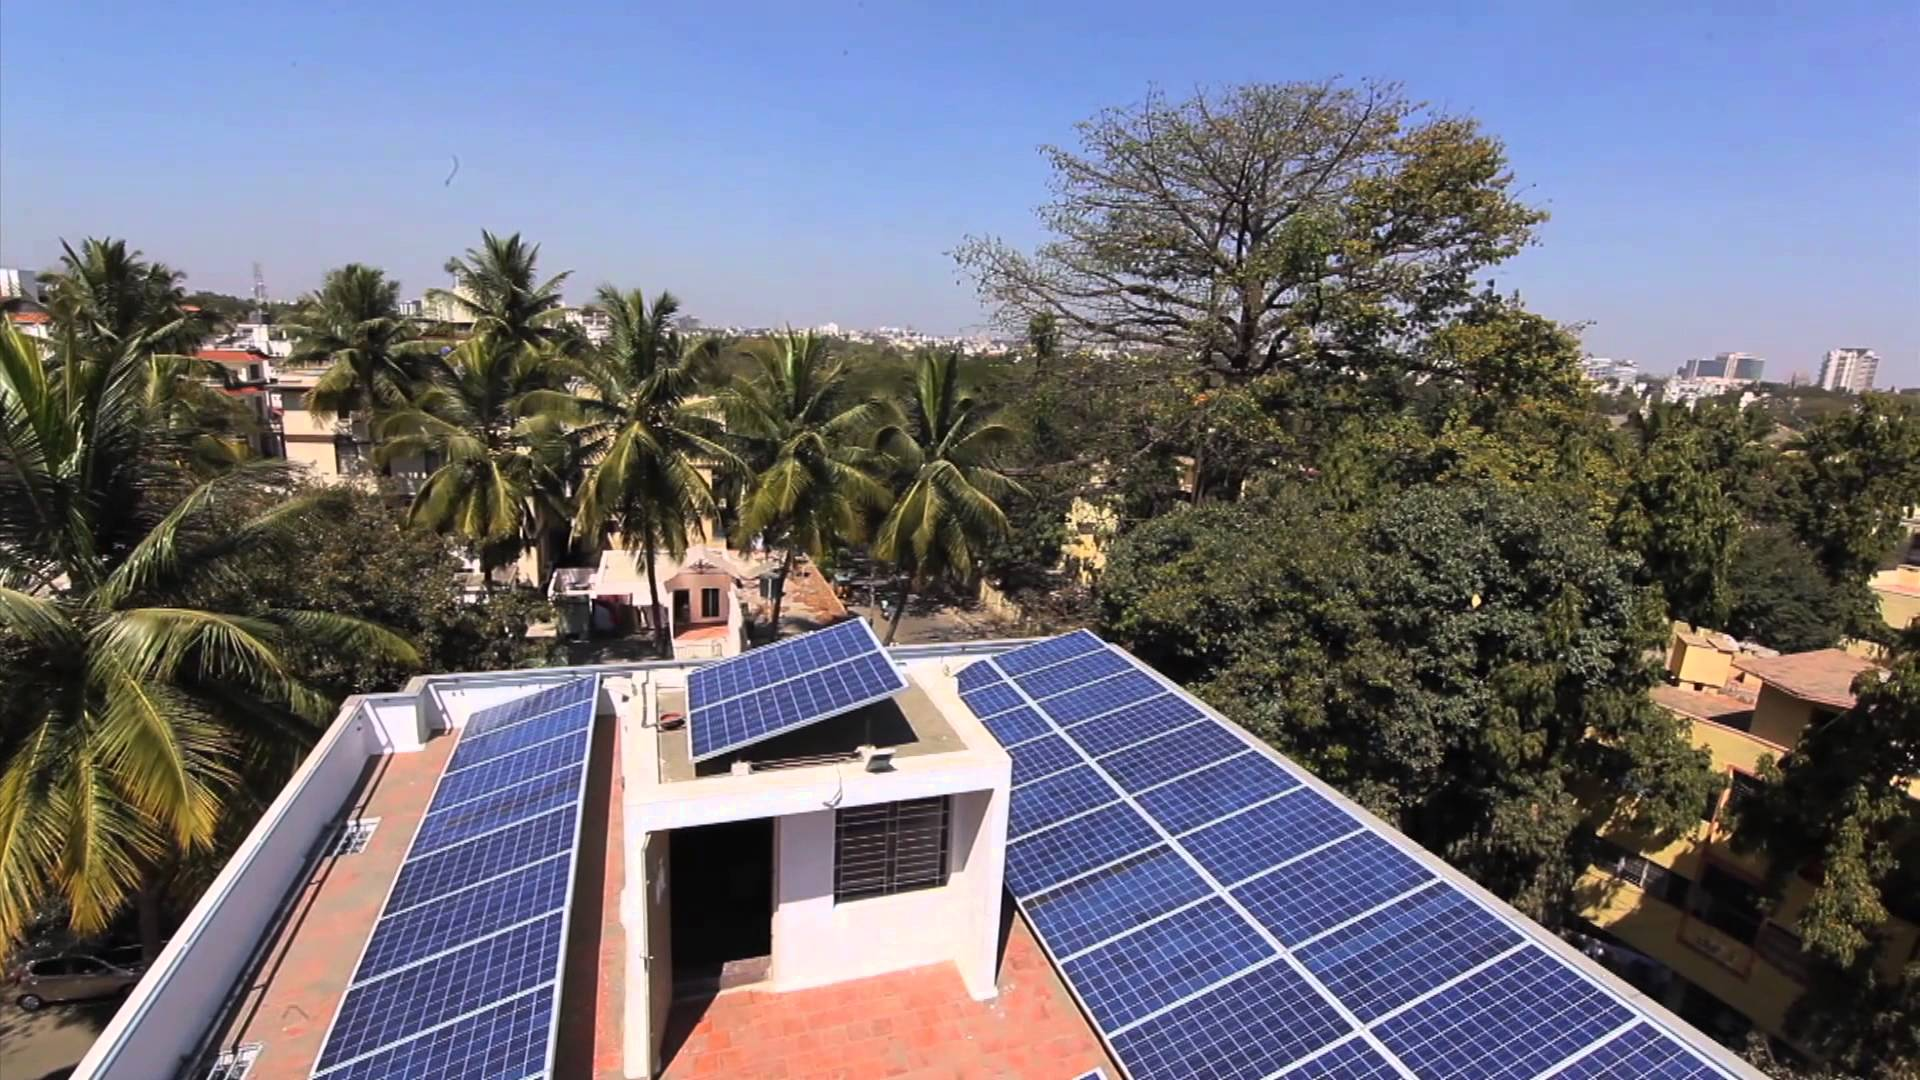 India Solar Dispute Right Intent Wrong Means